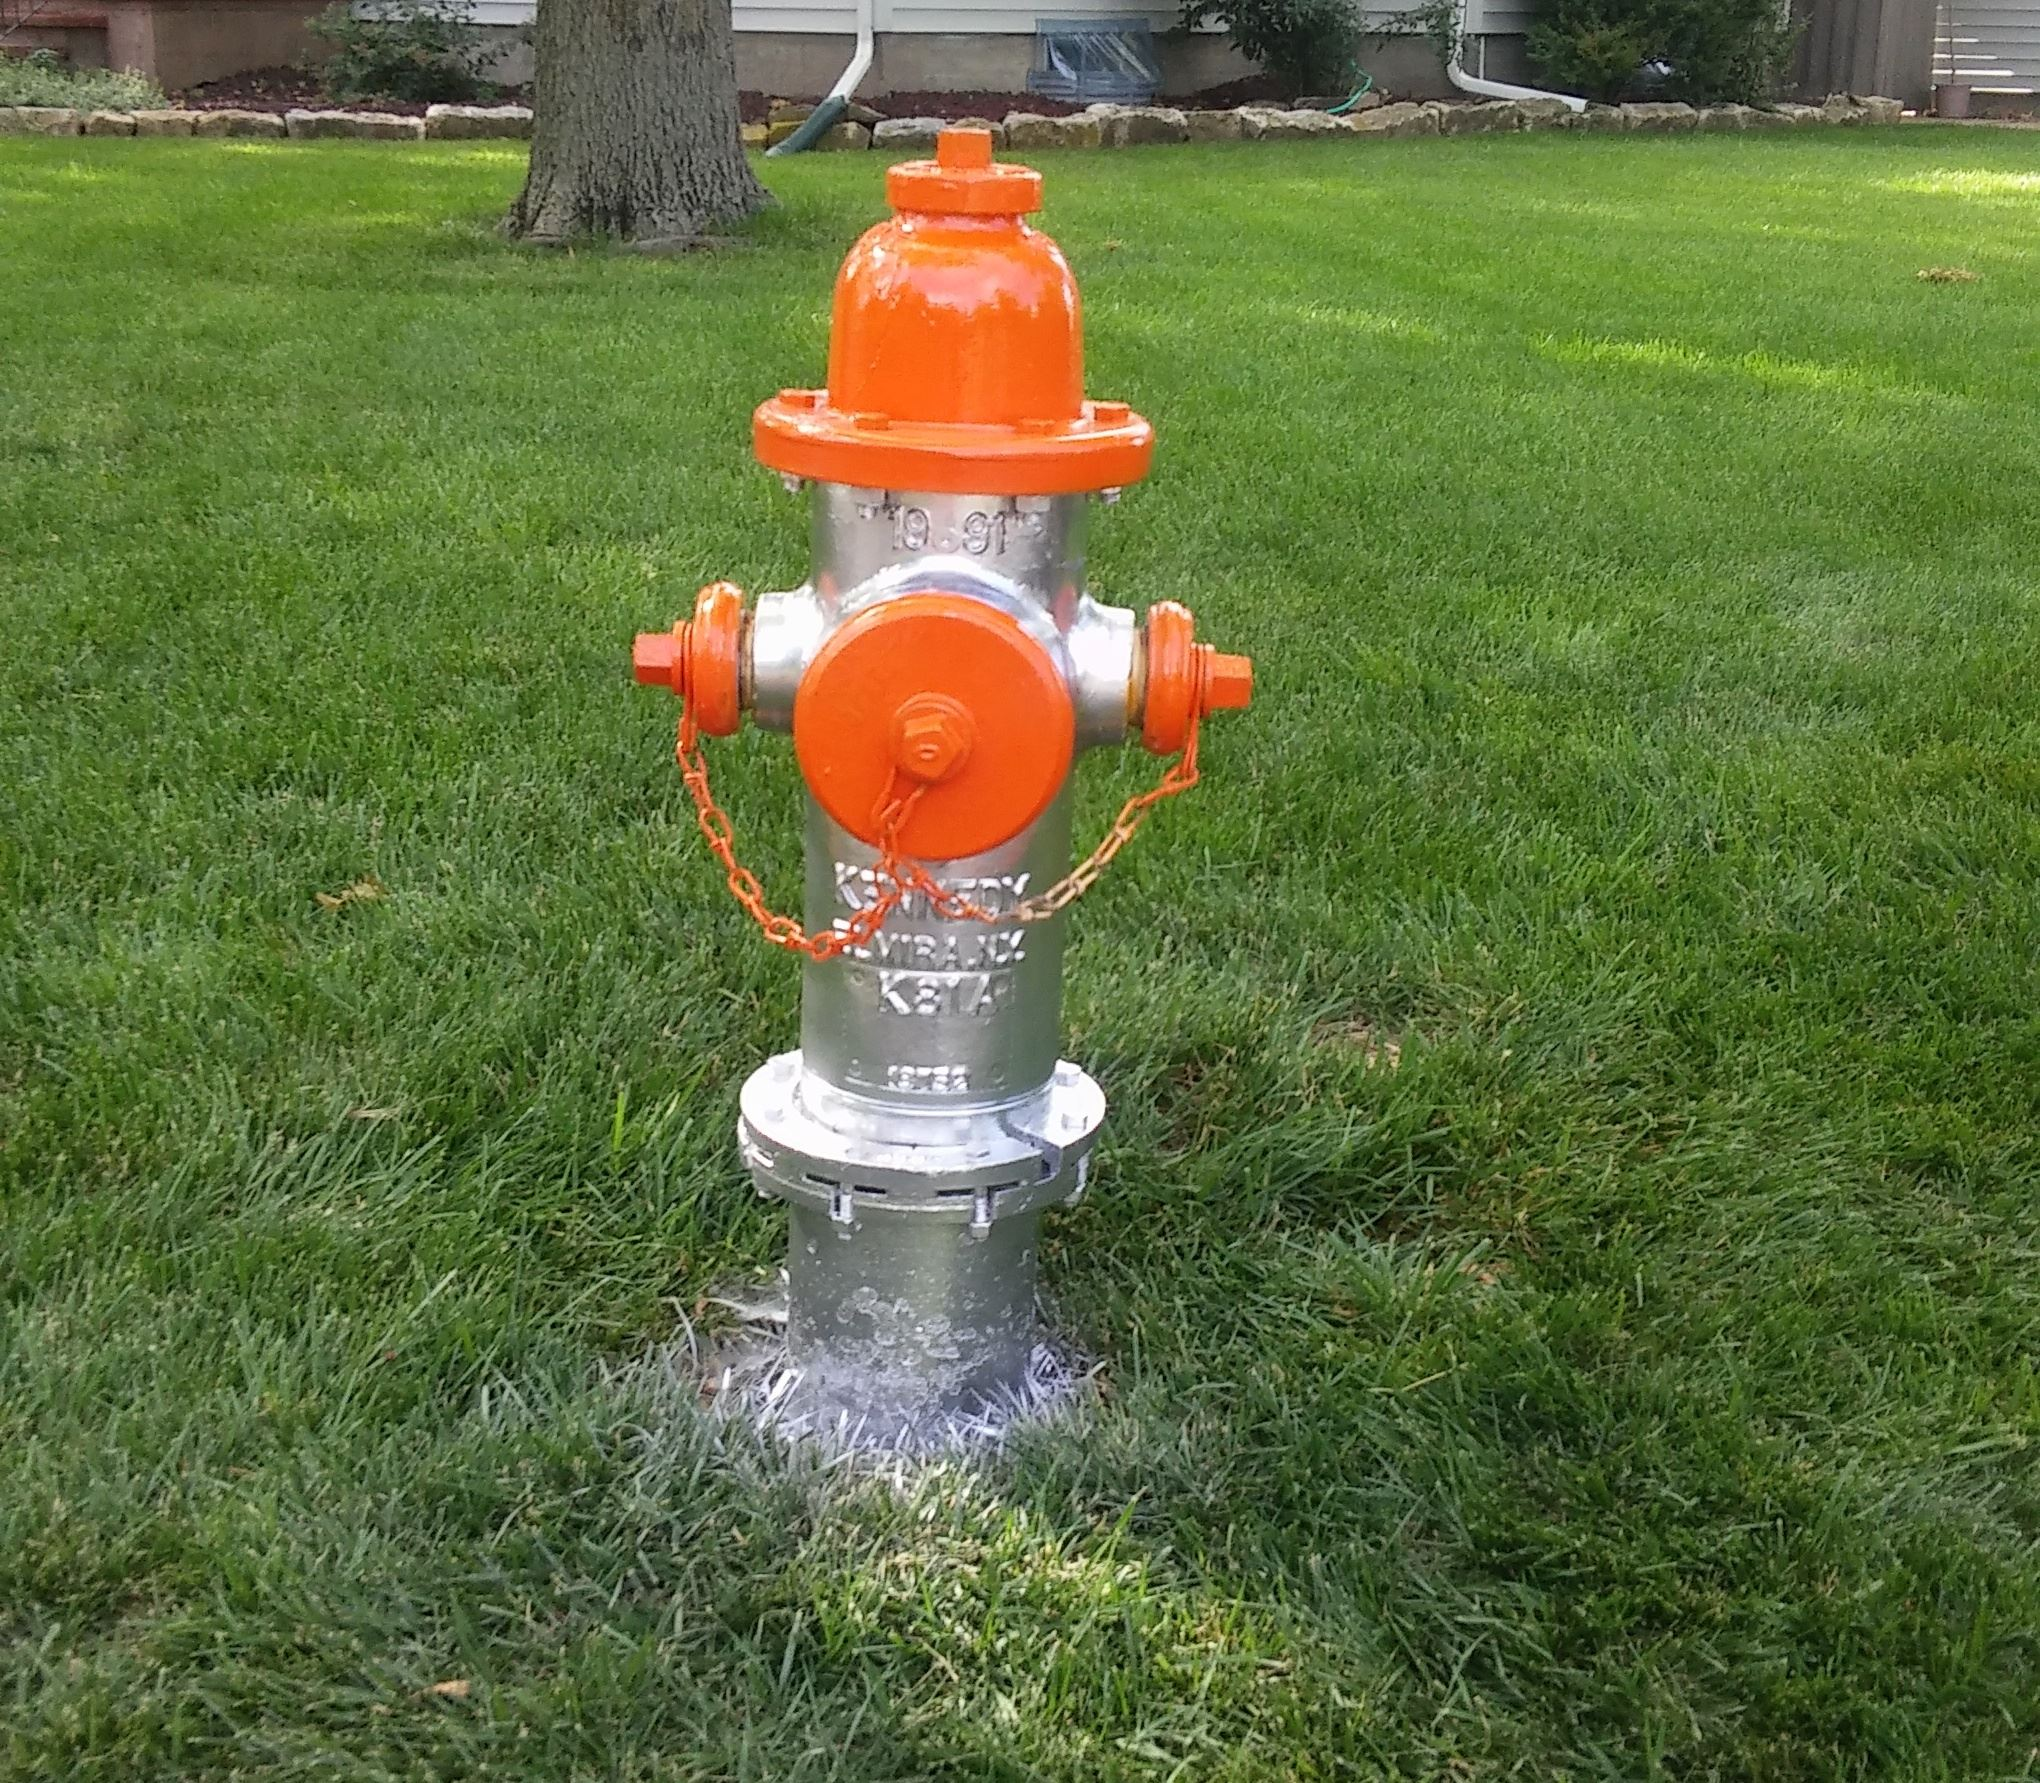 fire hydrant-orange